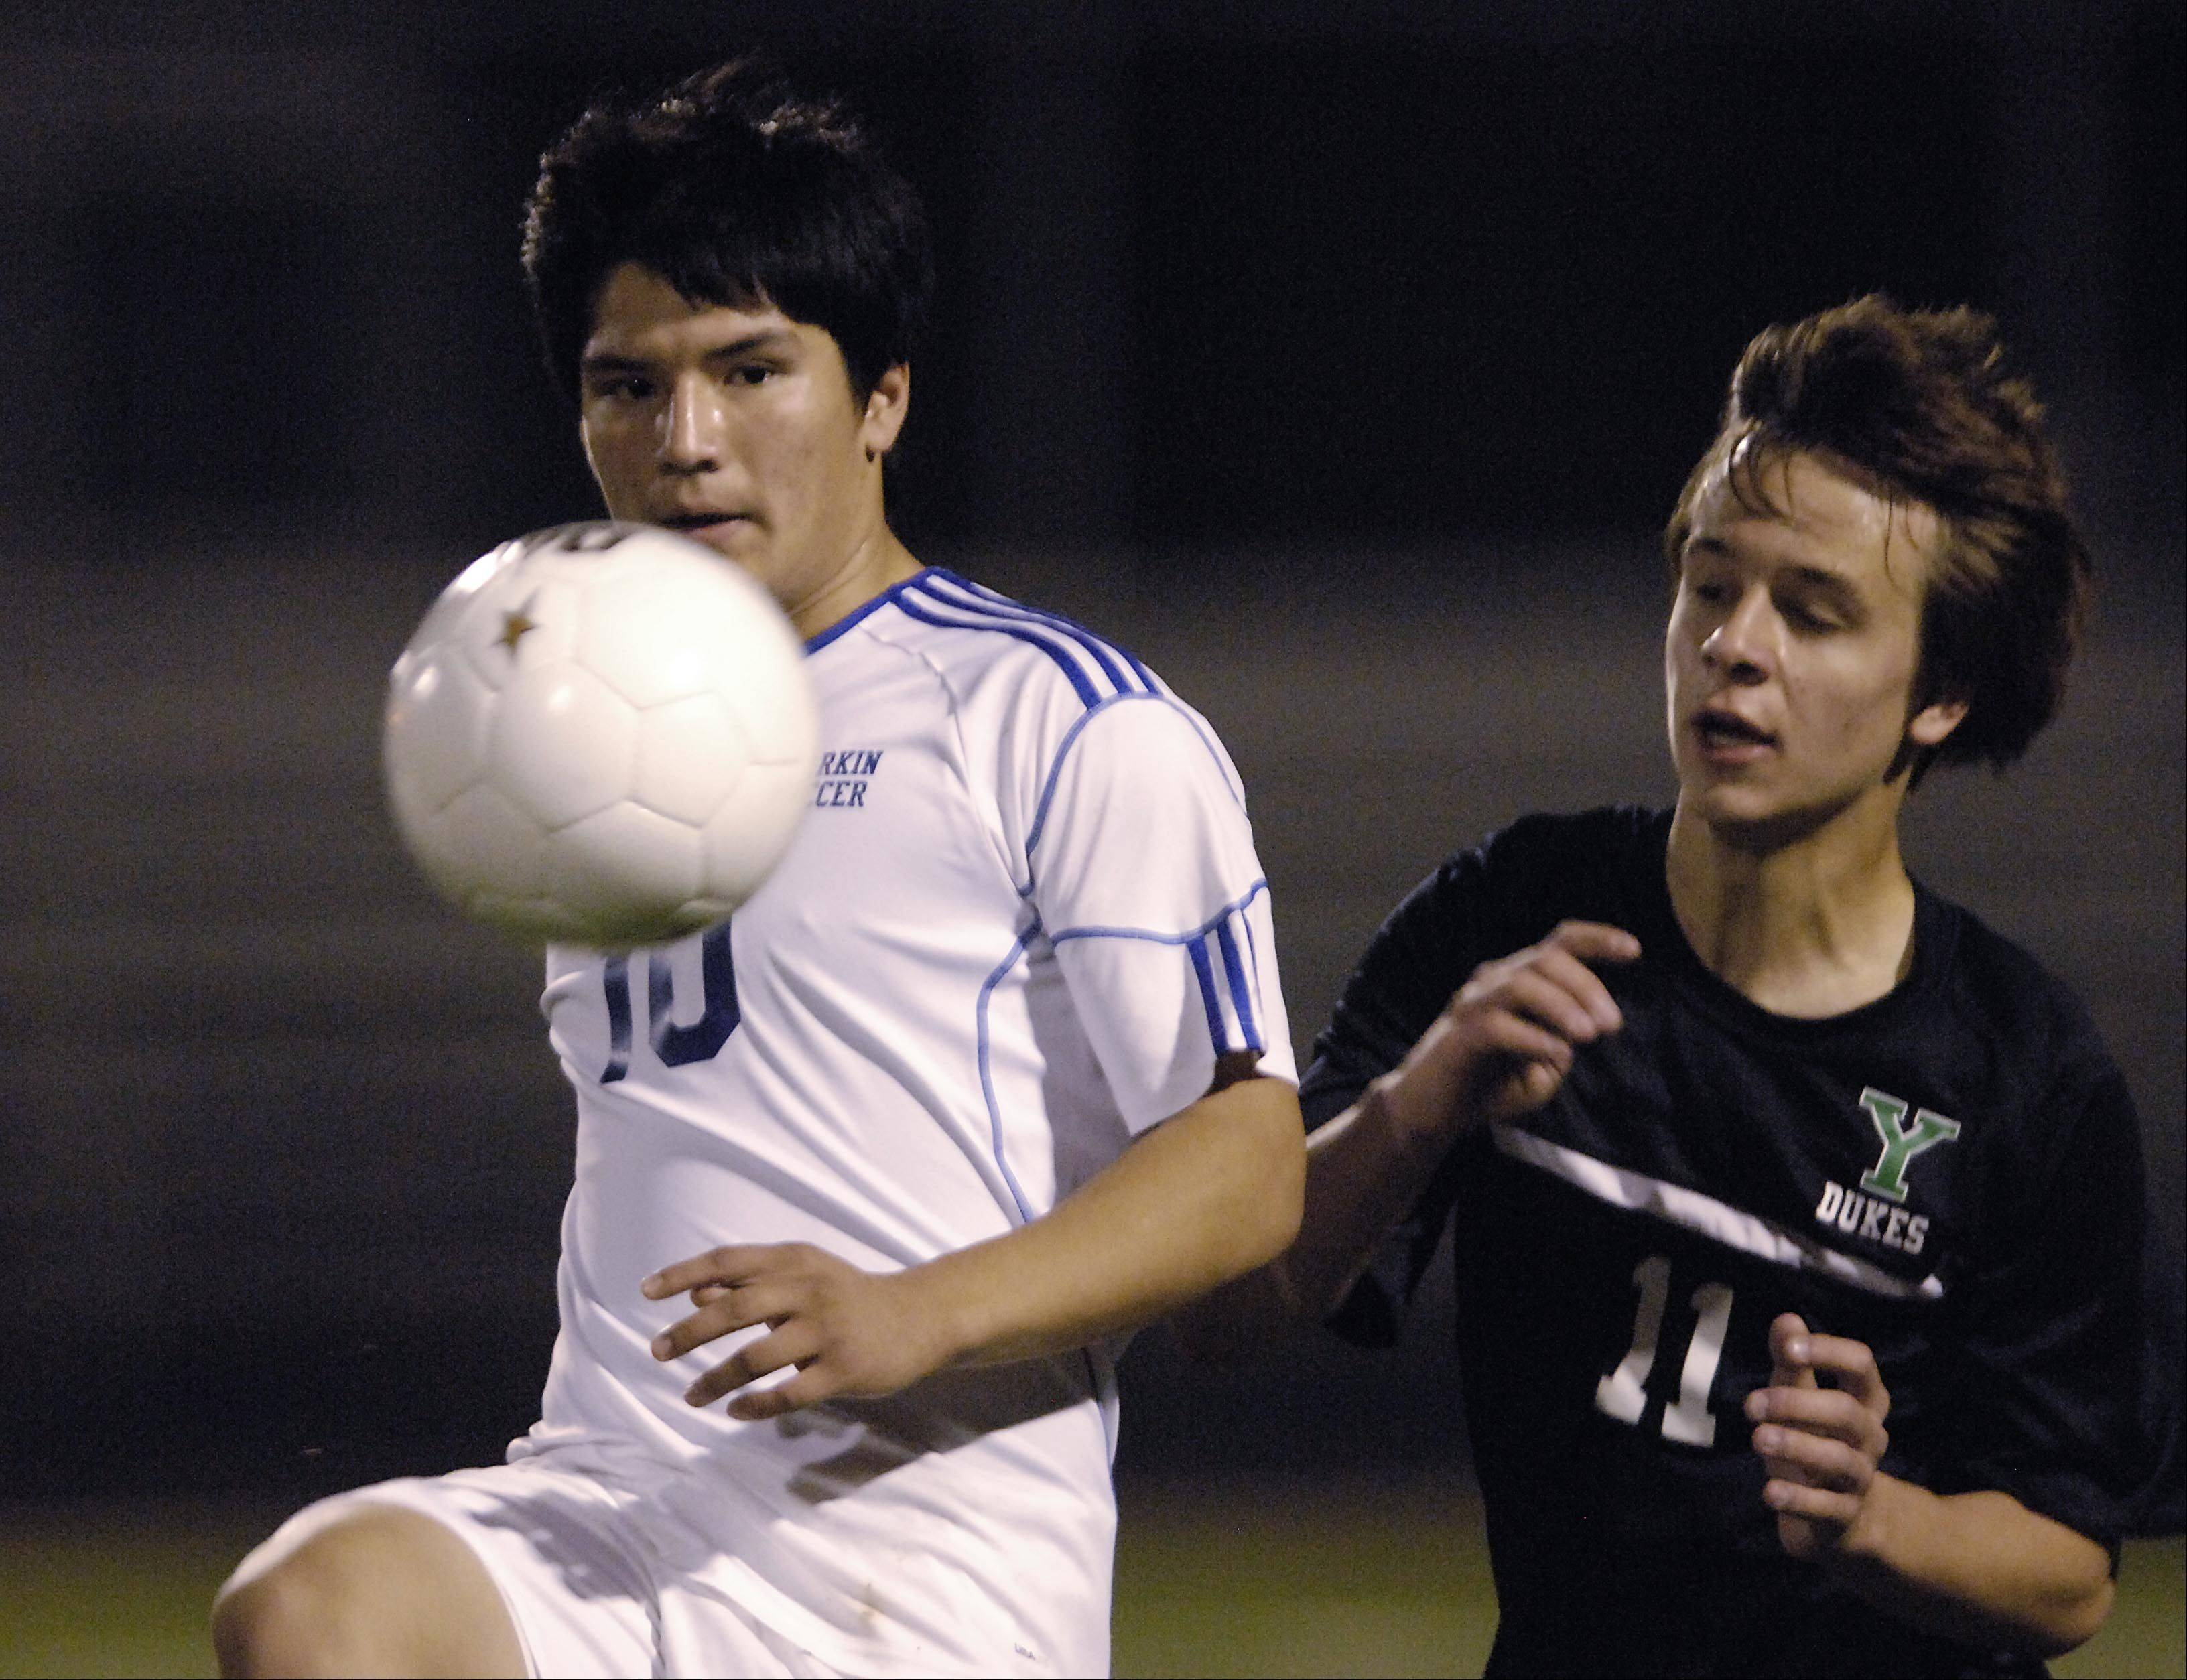 Larkin's Erik Rodriguez controls the ball against York's Nick Gaudio Tuesday in the Schaumburg regional playoff game. Rodriguez scored the last goal in the 3-1 Larkin win.